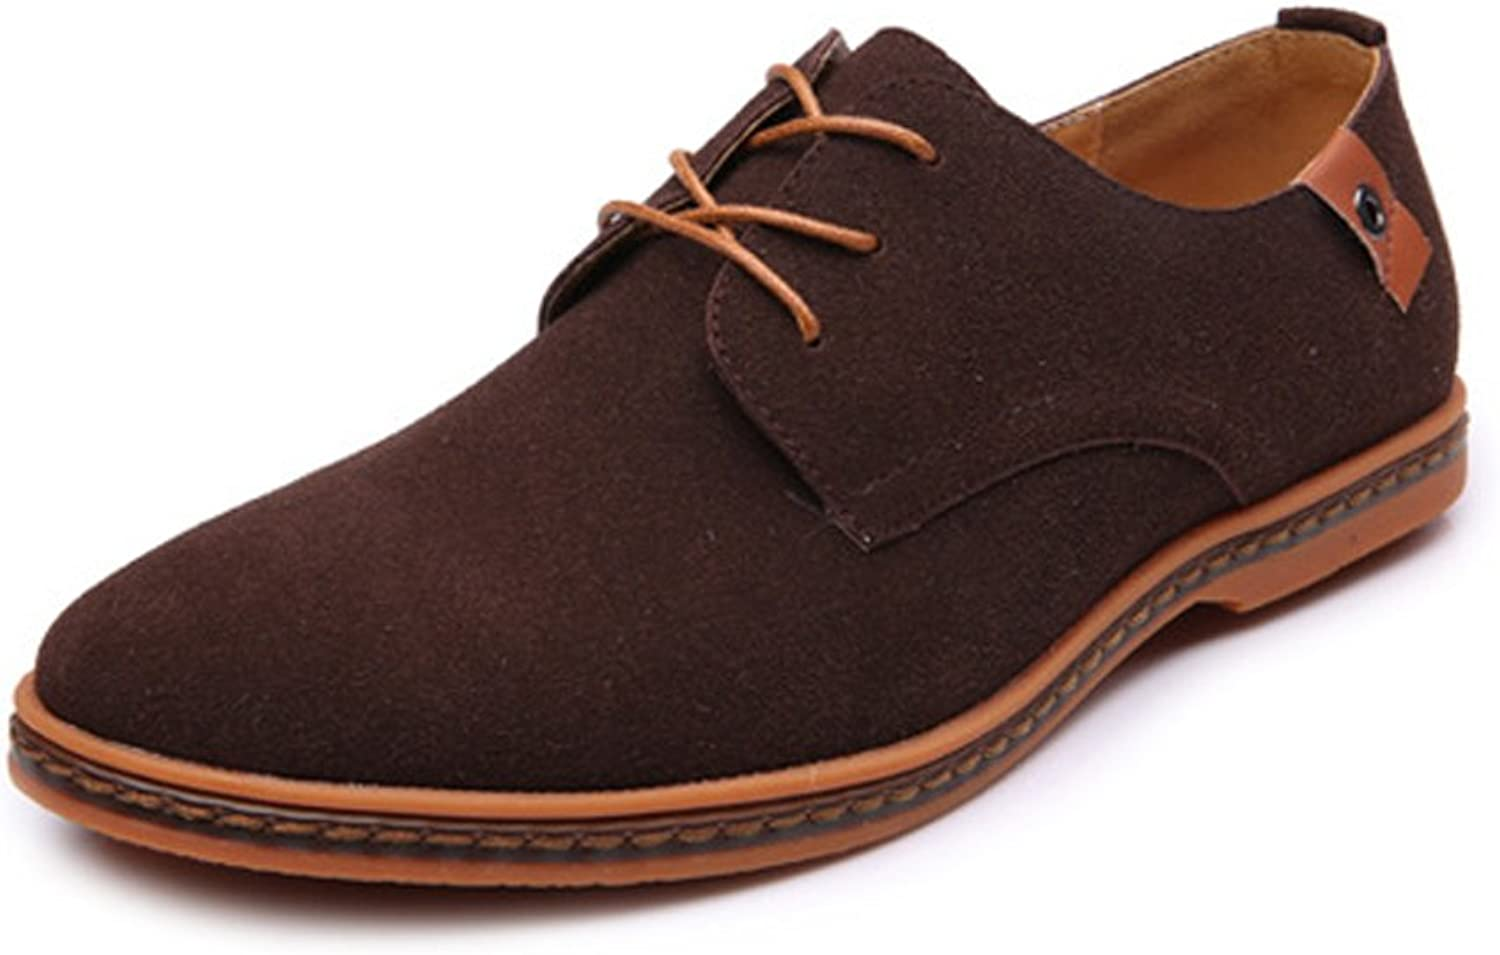 shoes Men's Casual Loafers shoes Lace Up Oxfords Microfiber Leather Upper Large Size Leather shoes (color   Coffee, Size   10.5 UK)